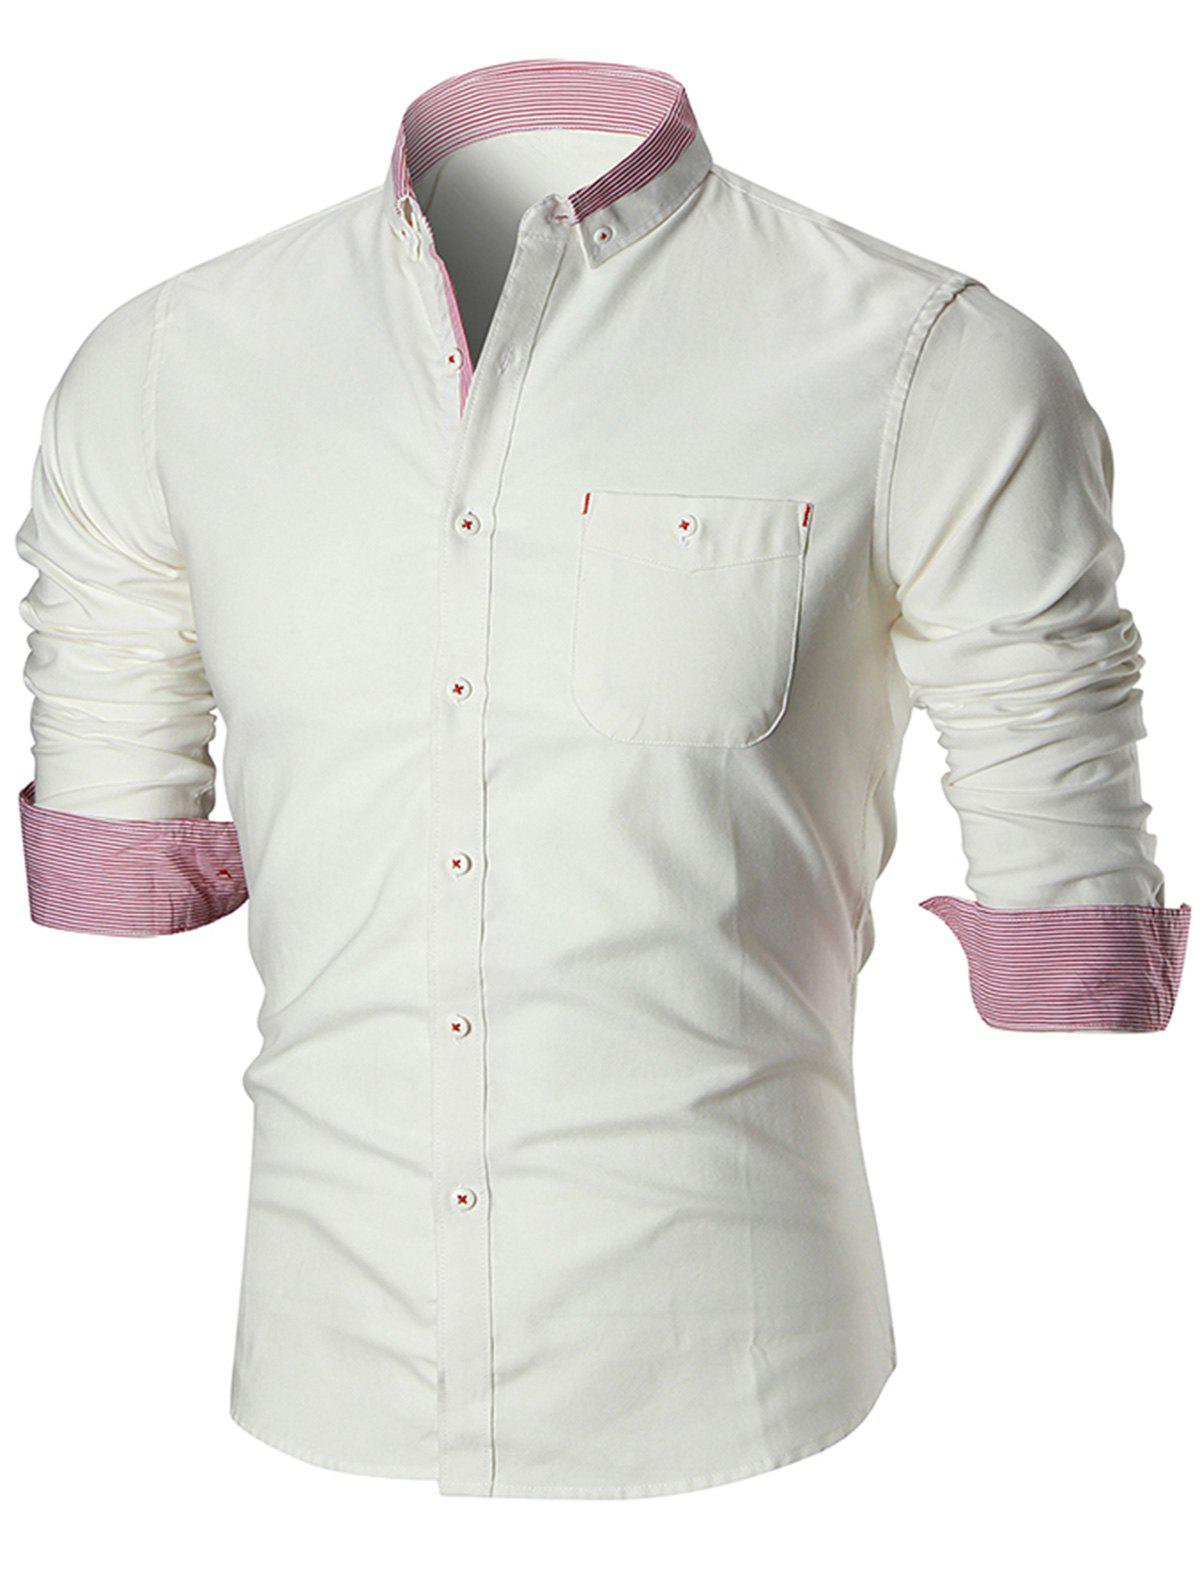 Long Sleeve Chest Pocket Button-down ShirtMEN<br><br>Size: L; Color: WHITE; Shirts Type: Casual Shirts; Material: Cotton,Polyester; Sleeve Length: Full; Collar: Turn-down Collar; Pattern Type: Striped; Weight: 0.3900kg; Package Contents: 1 x Shirt;